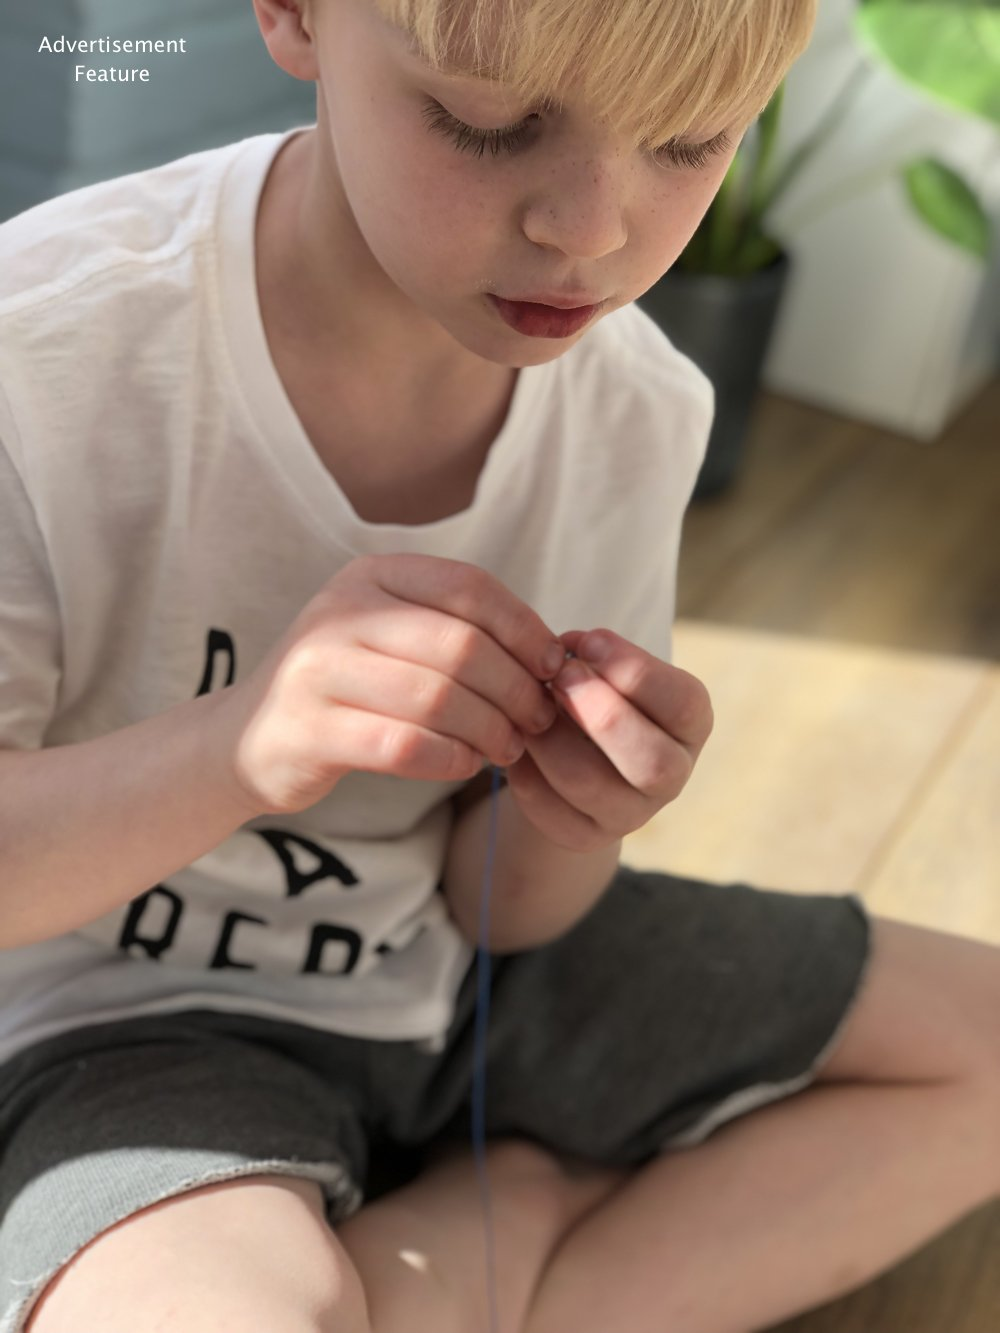 Mud & Bloom kids subscription box - boy threading beads onto the water cycle bracelet he's making